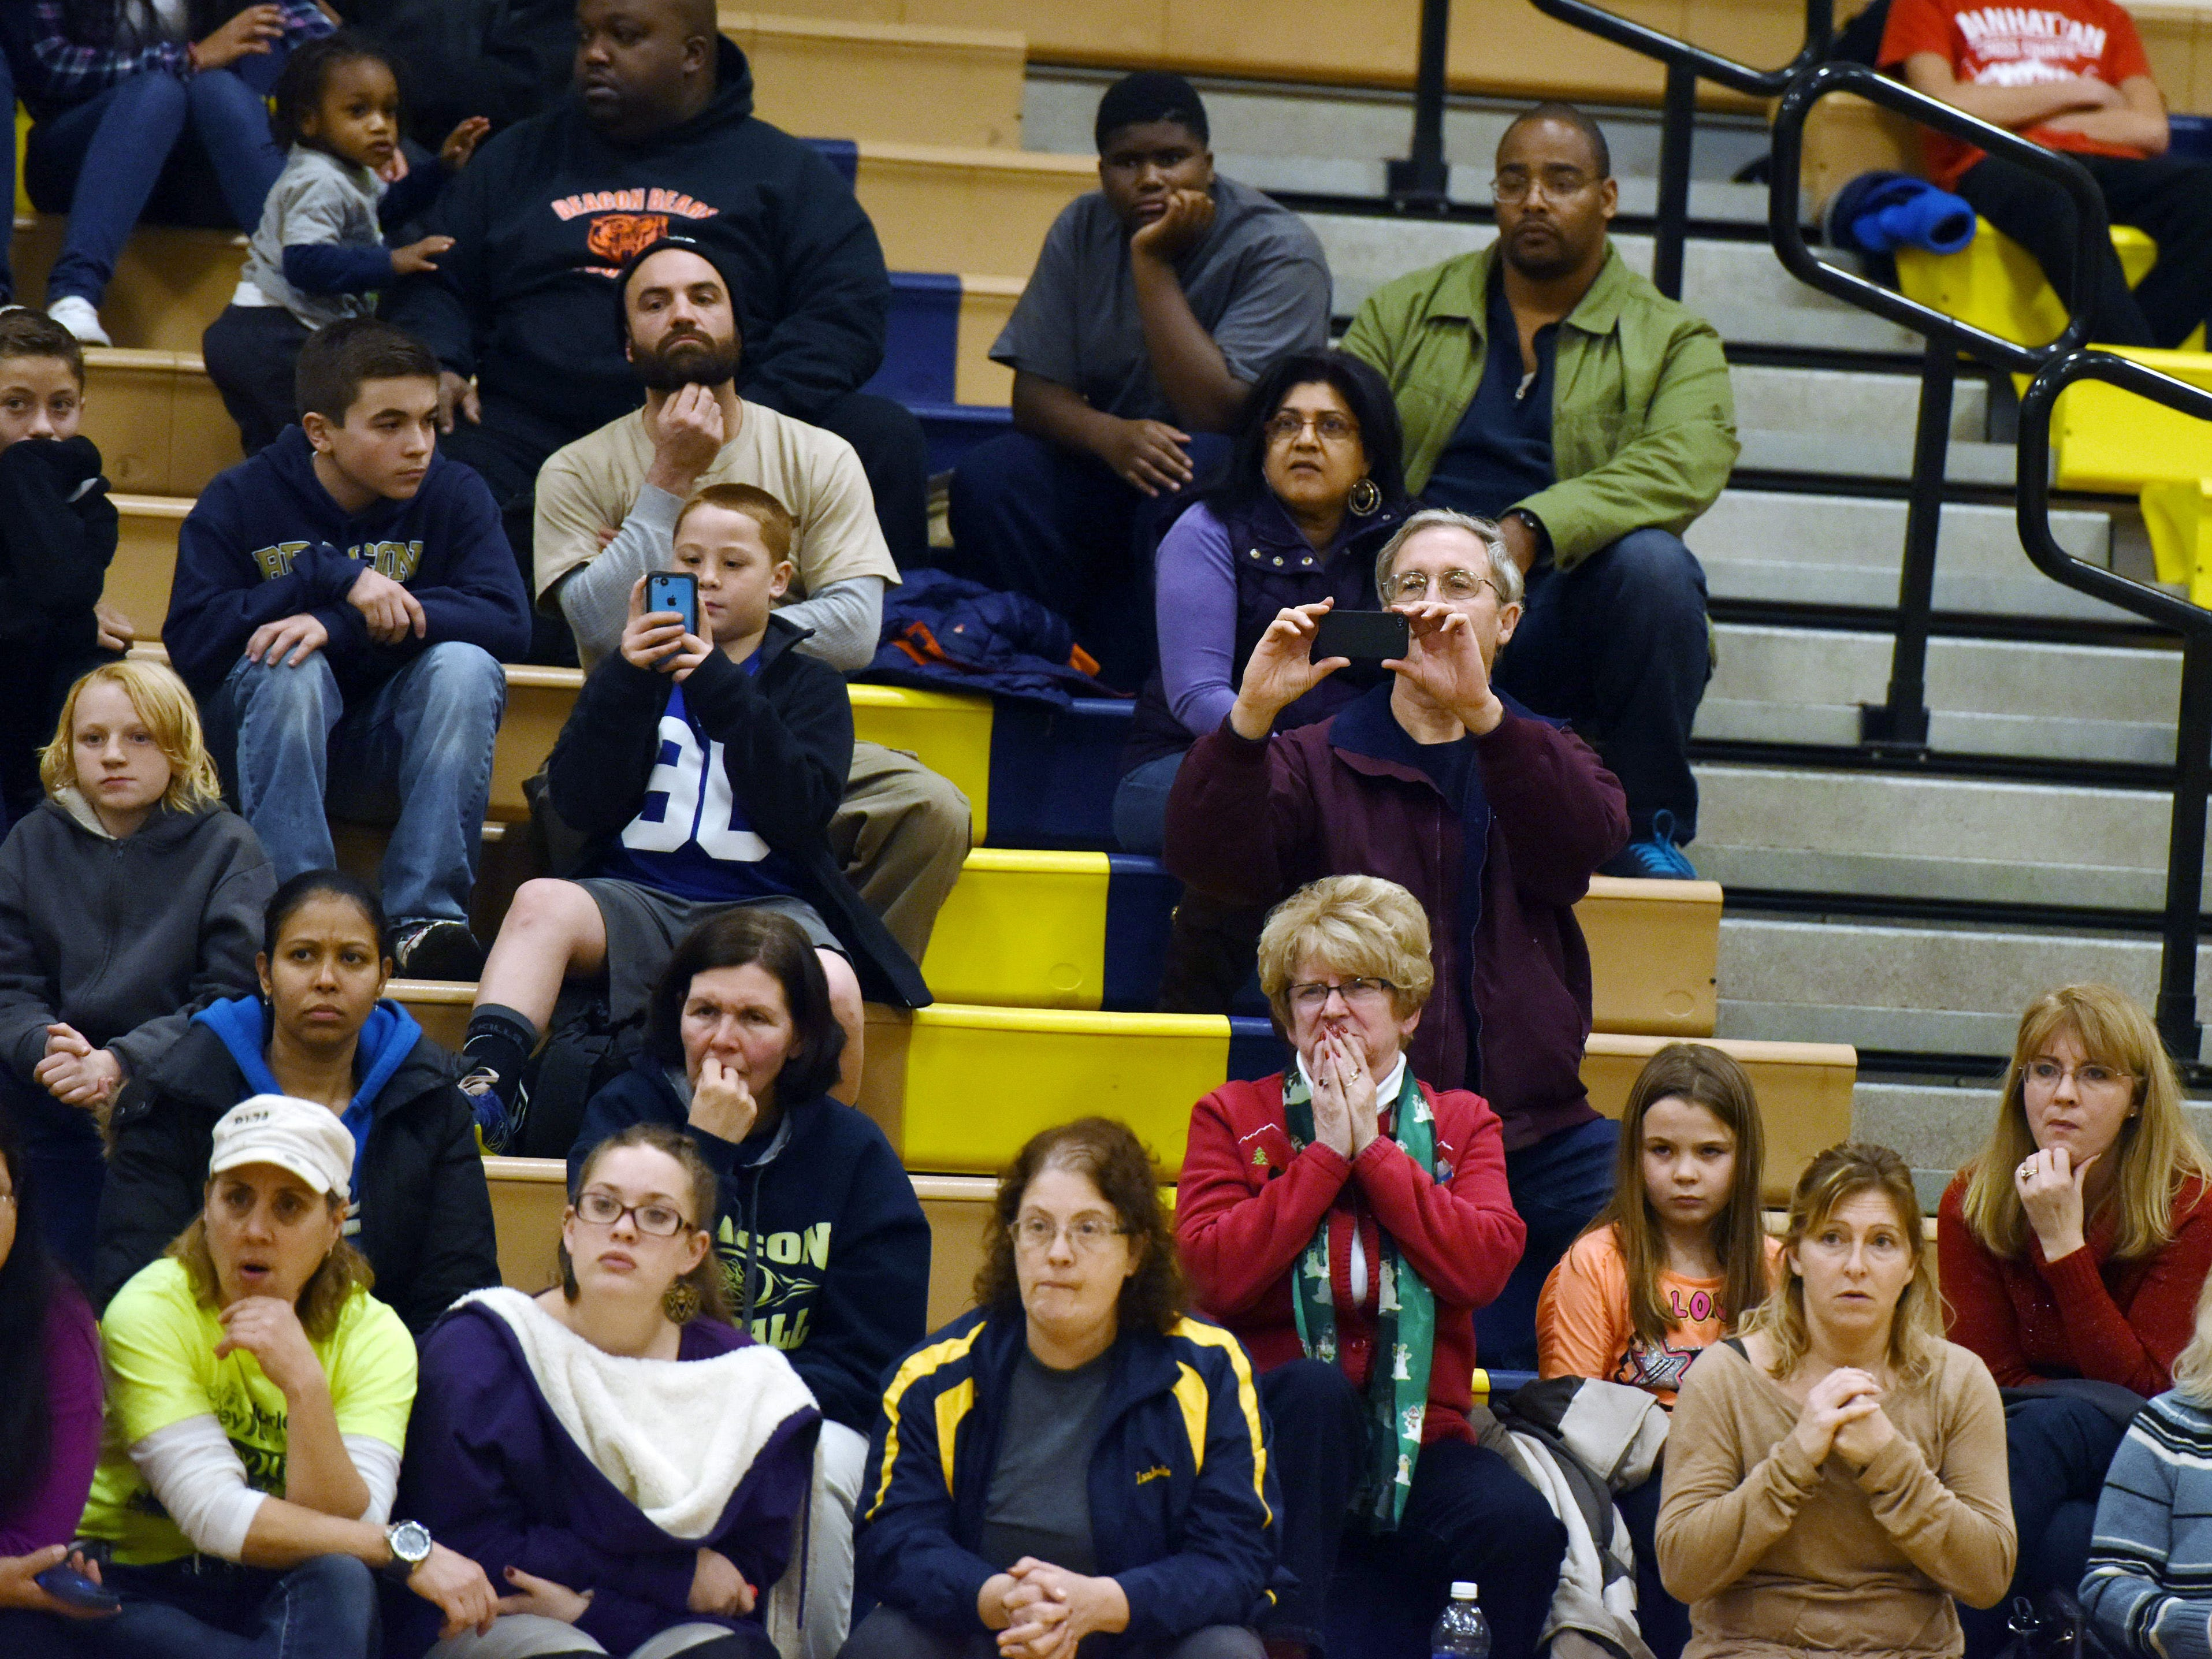 John Ollive, father of Beacon High School wrestler Liam Ollive, center right, watches and records his son wrestle in Beacon in December.